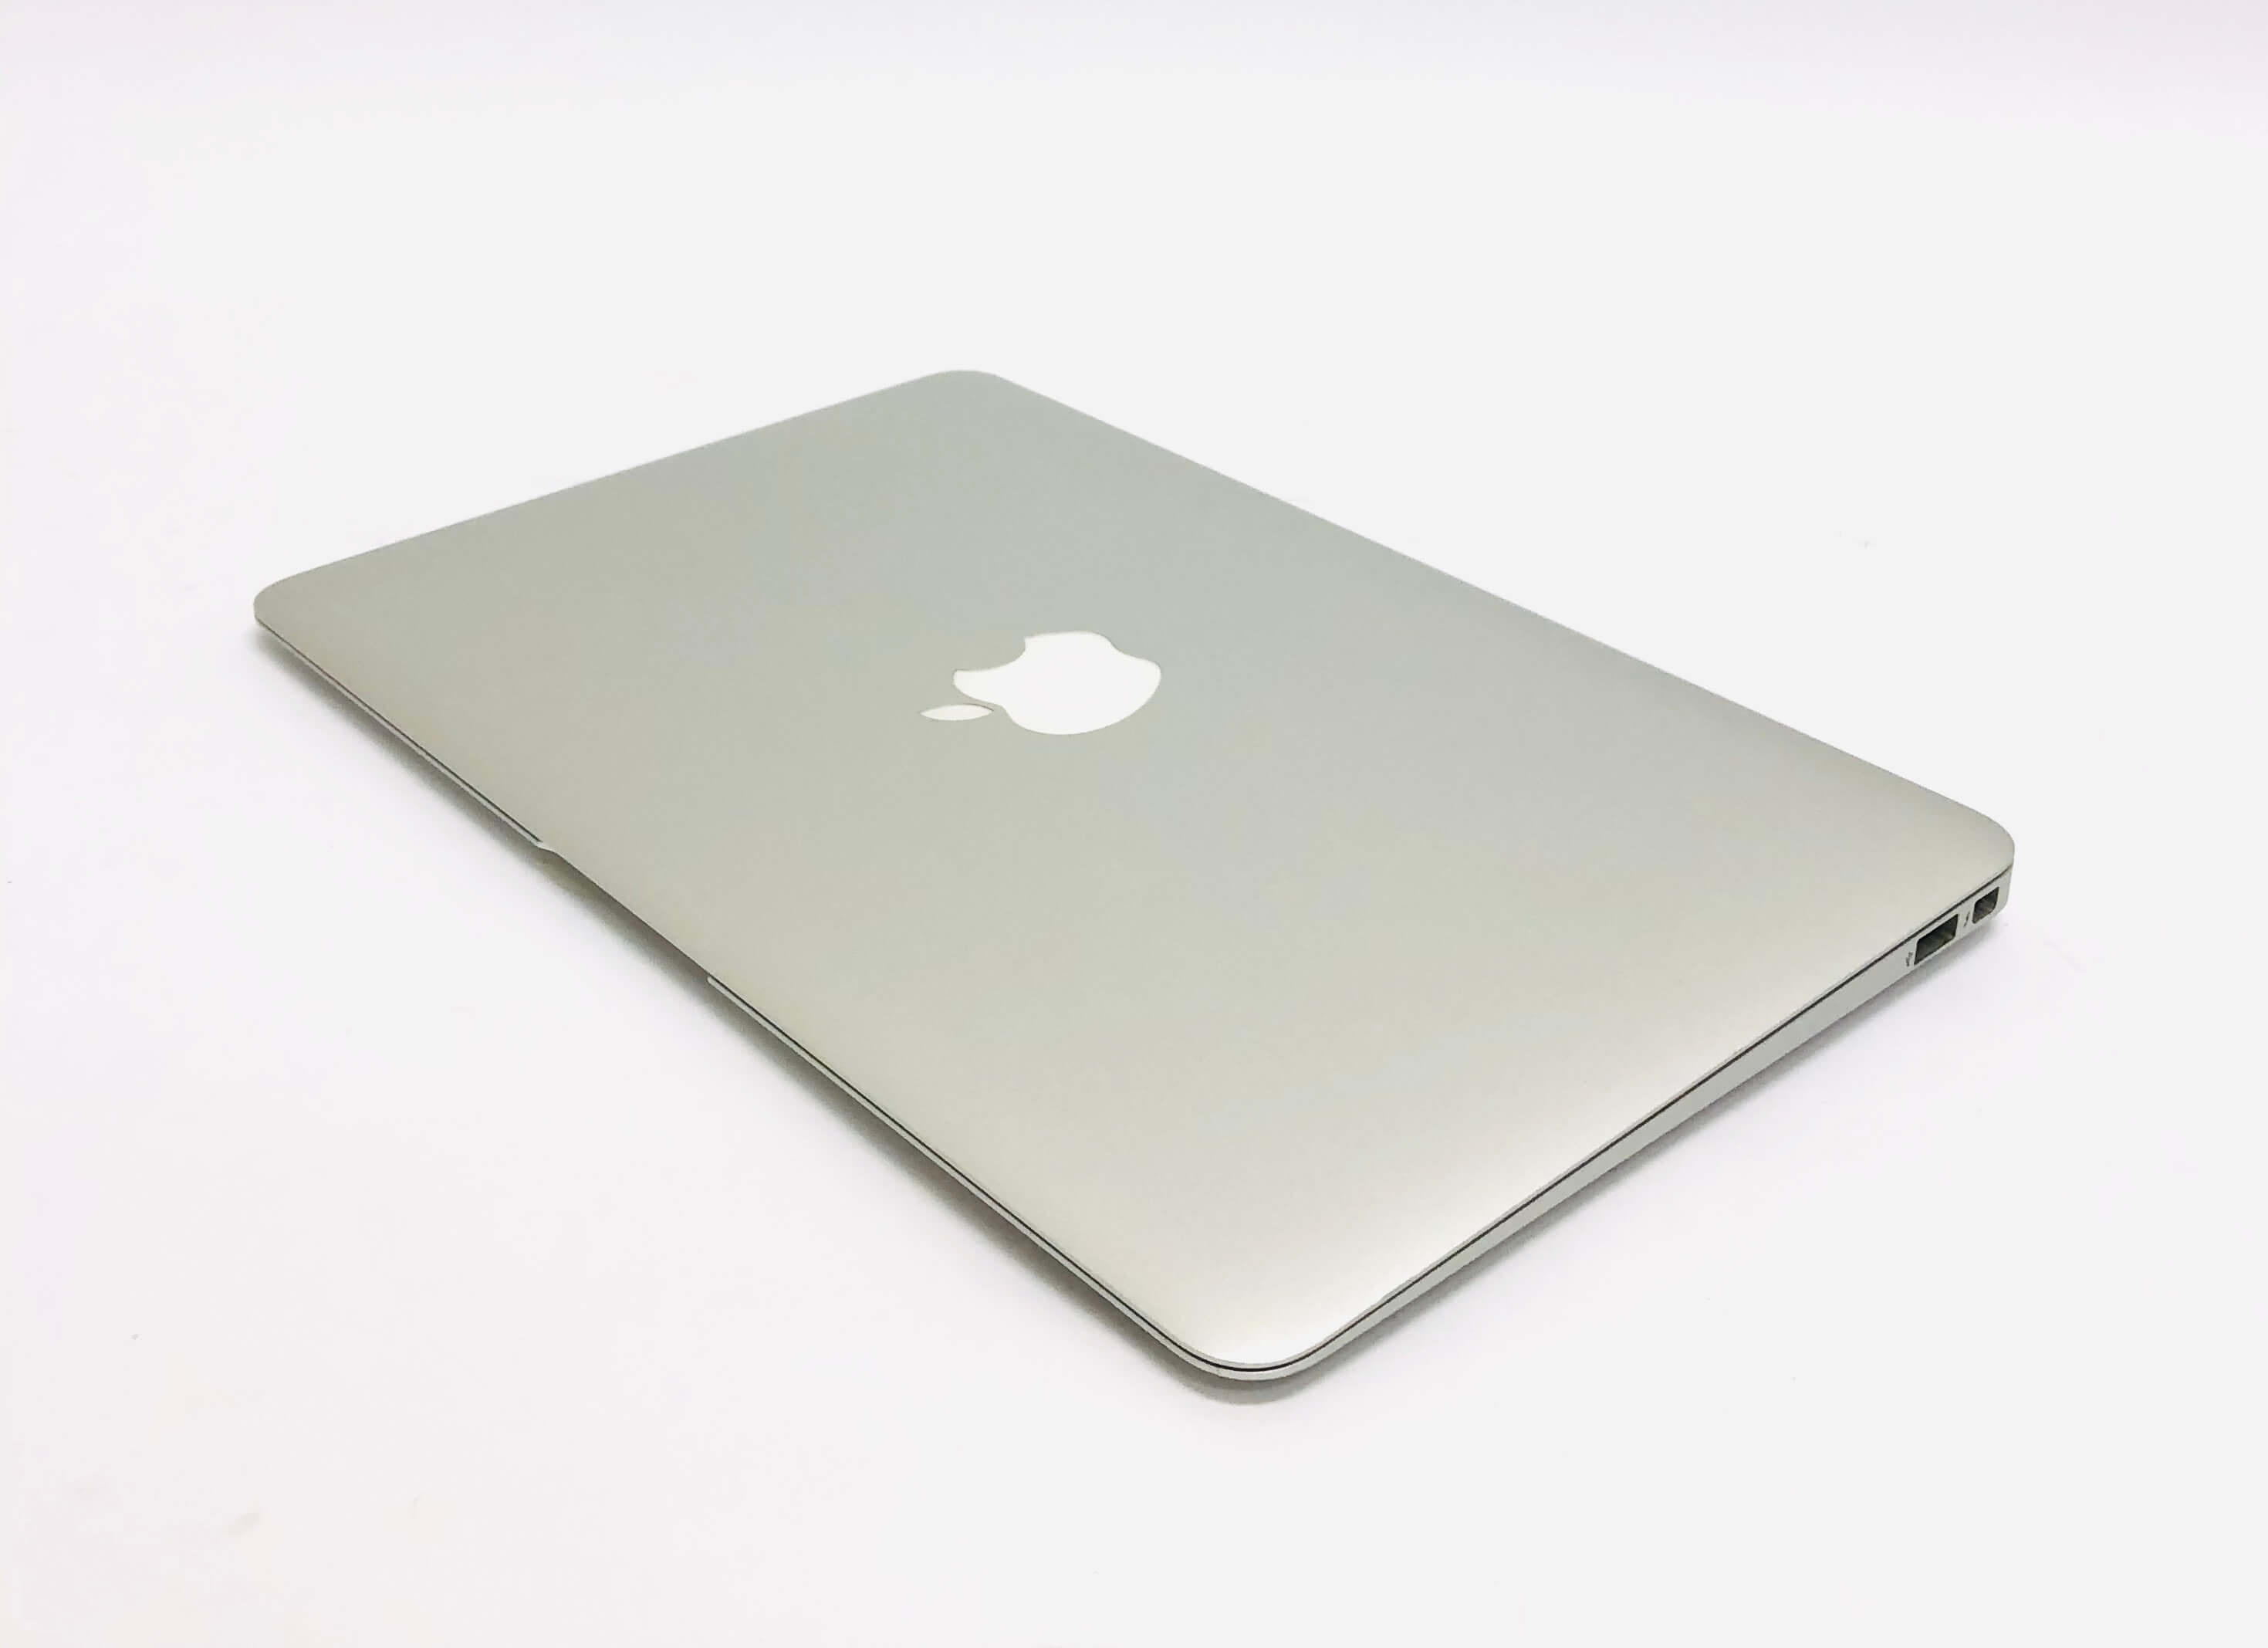 Macbook Air 11'', i5, rok 2014, 8GB RAM, 256GB SSD